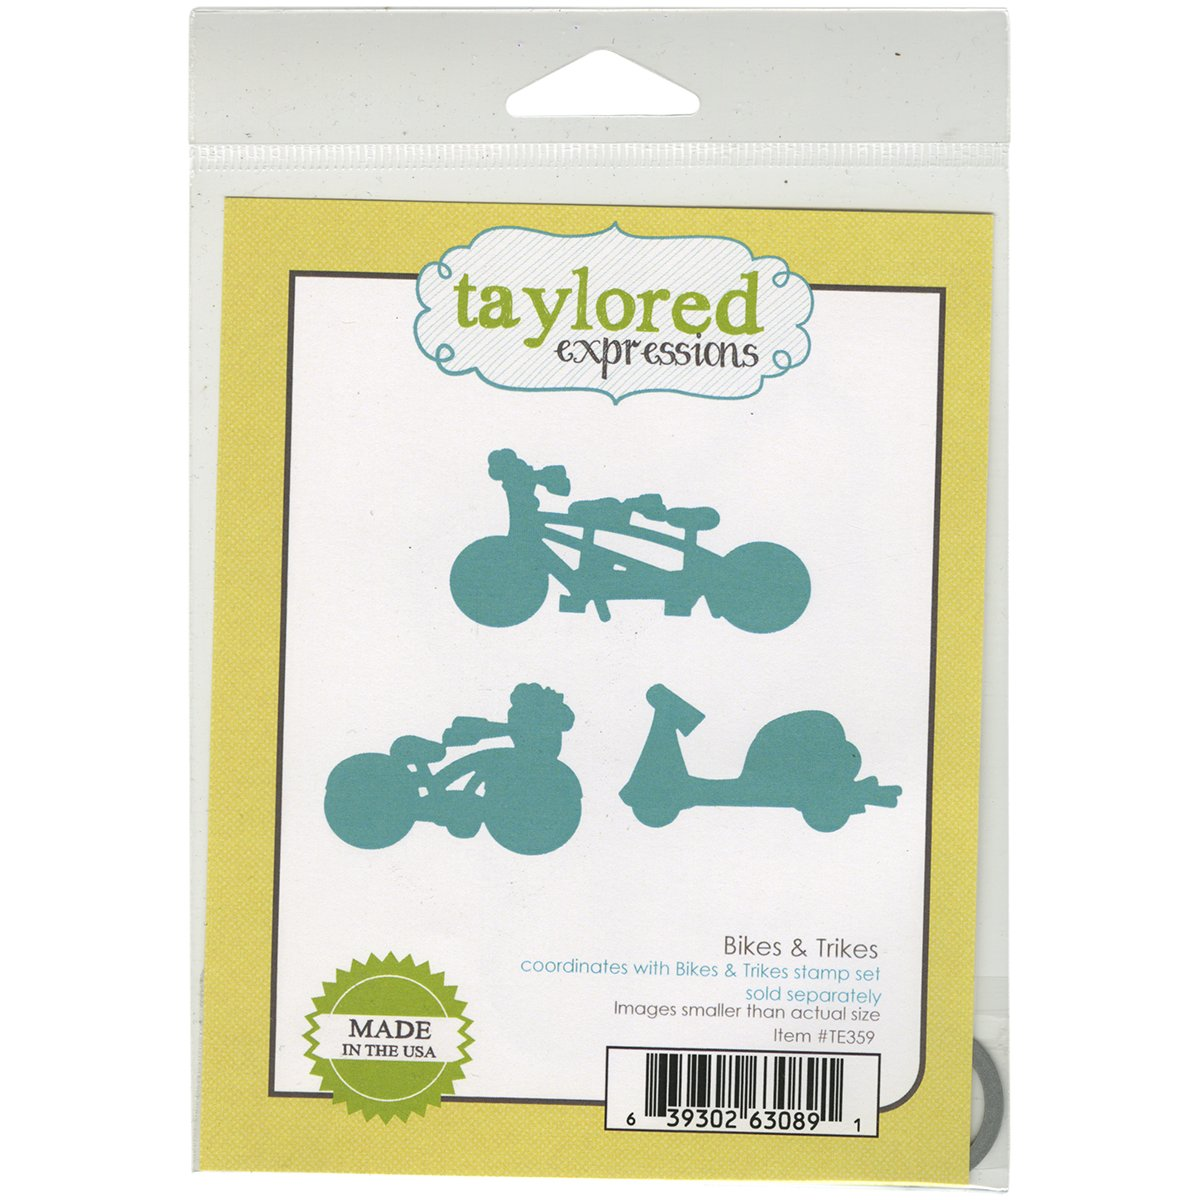 Taylored Expressions Dies-Bikes & Trikes (並行輸入品) B00OY2DCGY